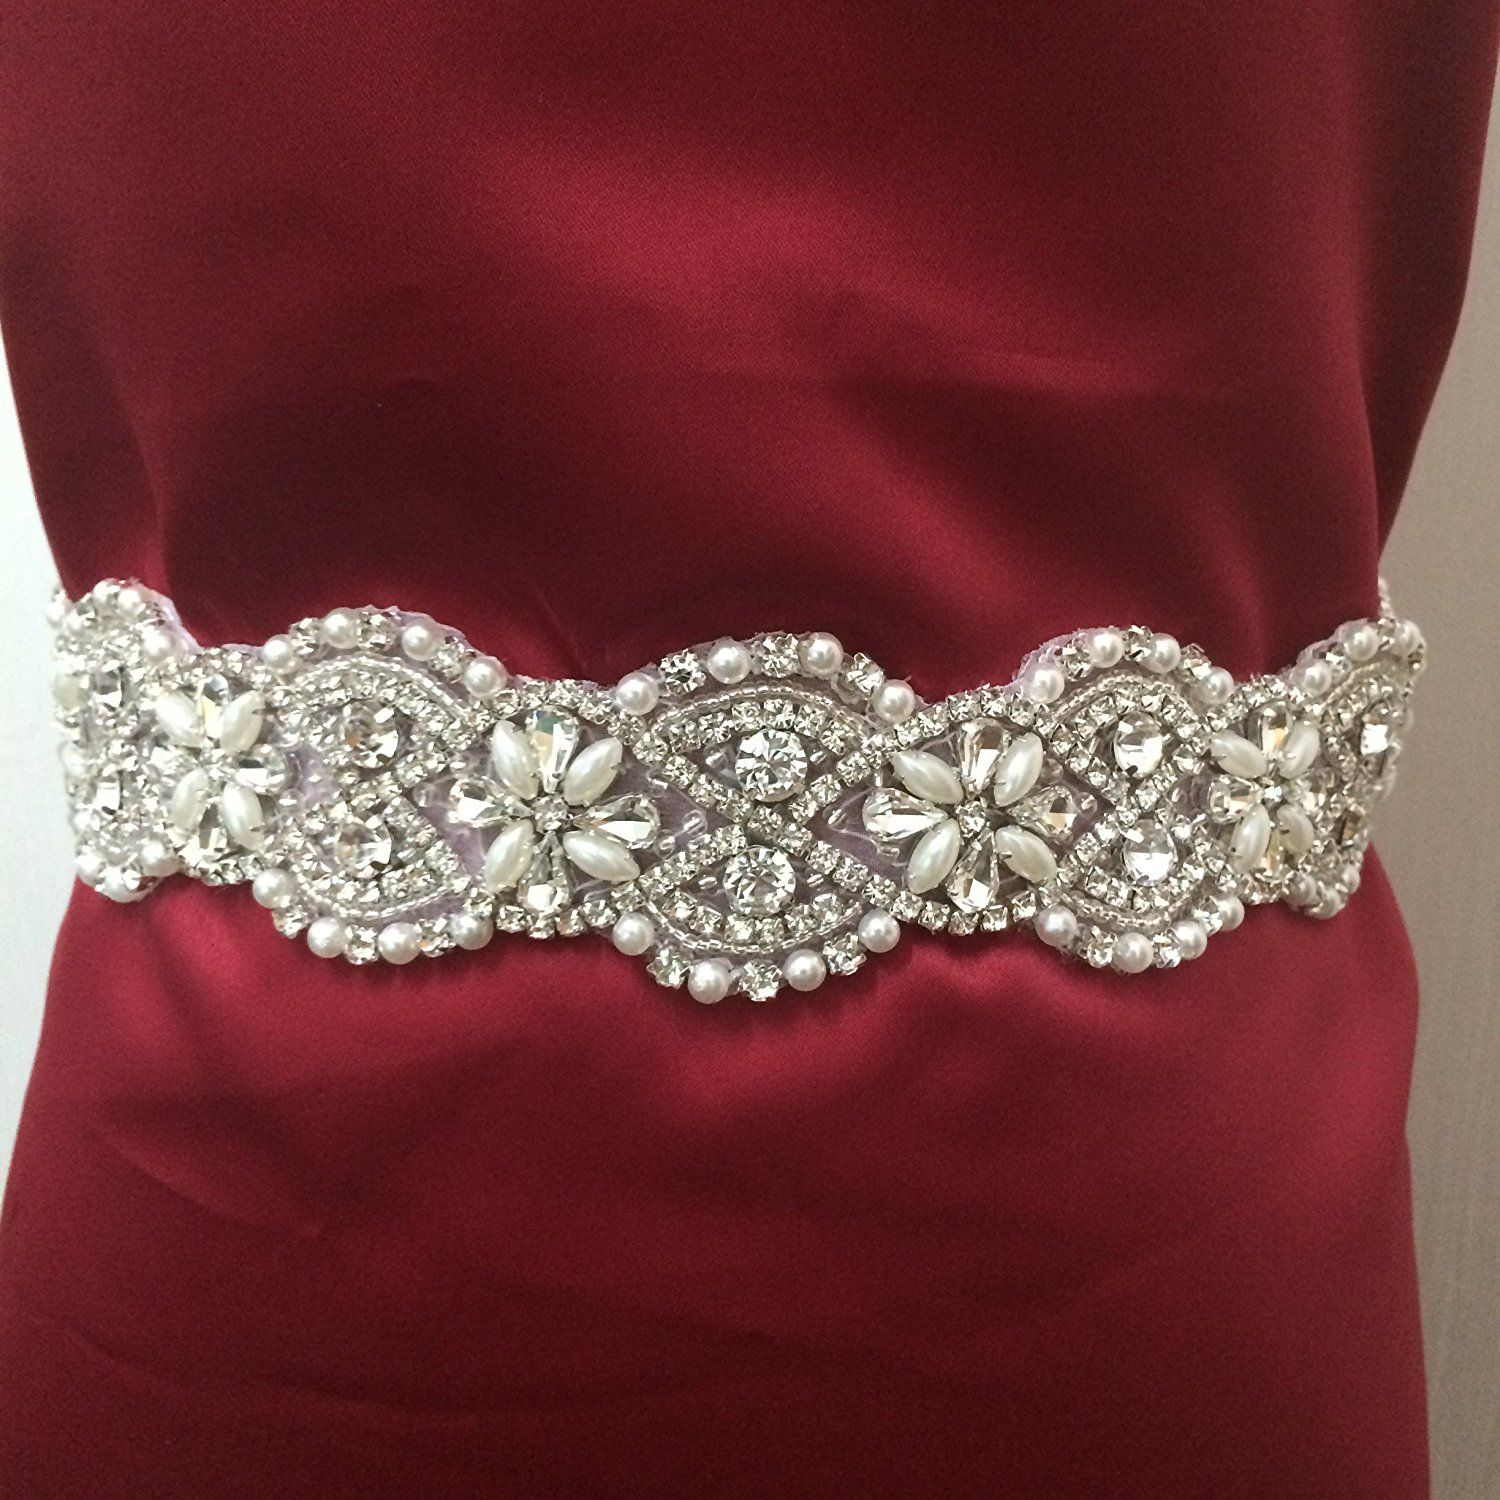 Sale Bridal Belt Wedding Belt Sash Rhinestone Applique,pearl Applique,wedding Sash Applique,wedding Belt Applique,diy Wedding Belt,diy Bridal Sash,bridal Wedding Accessories--m109 >>> Be sure to check out this awesome item.